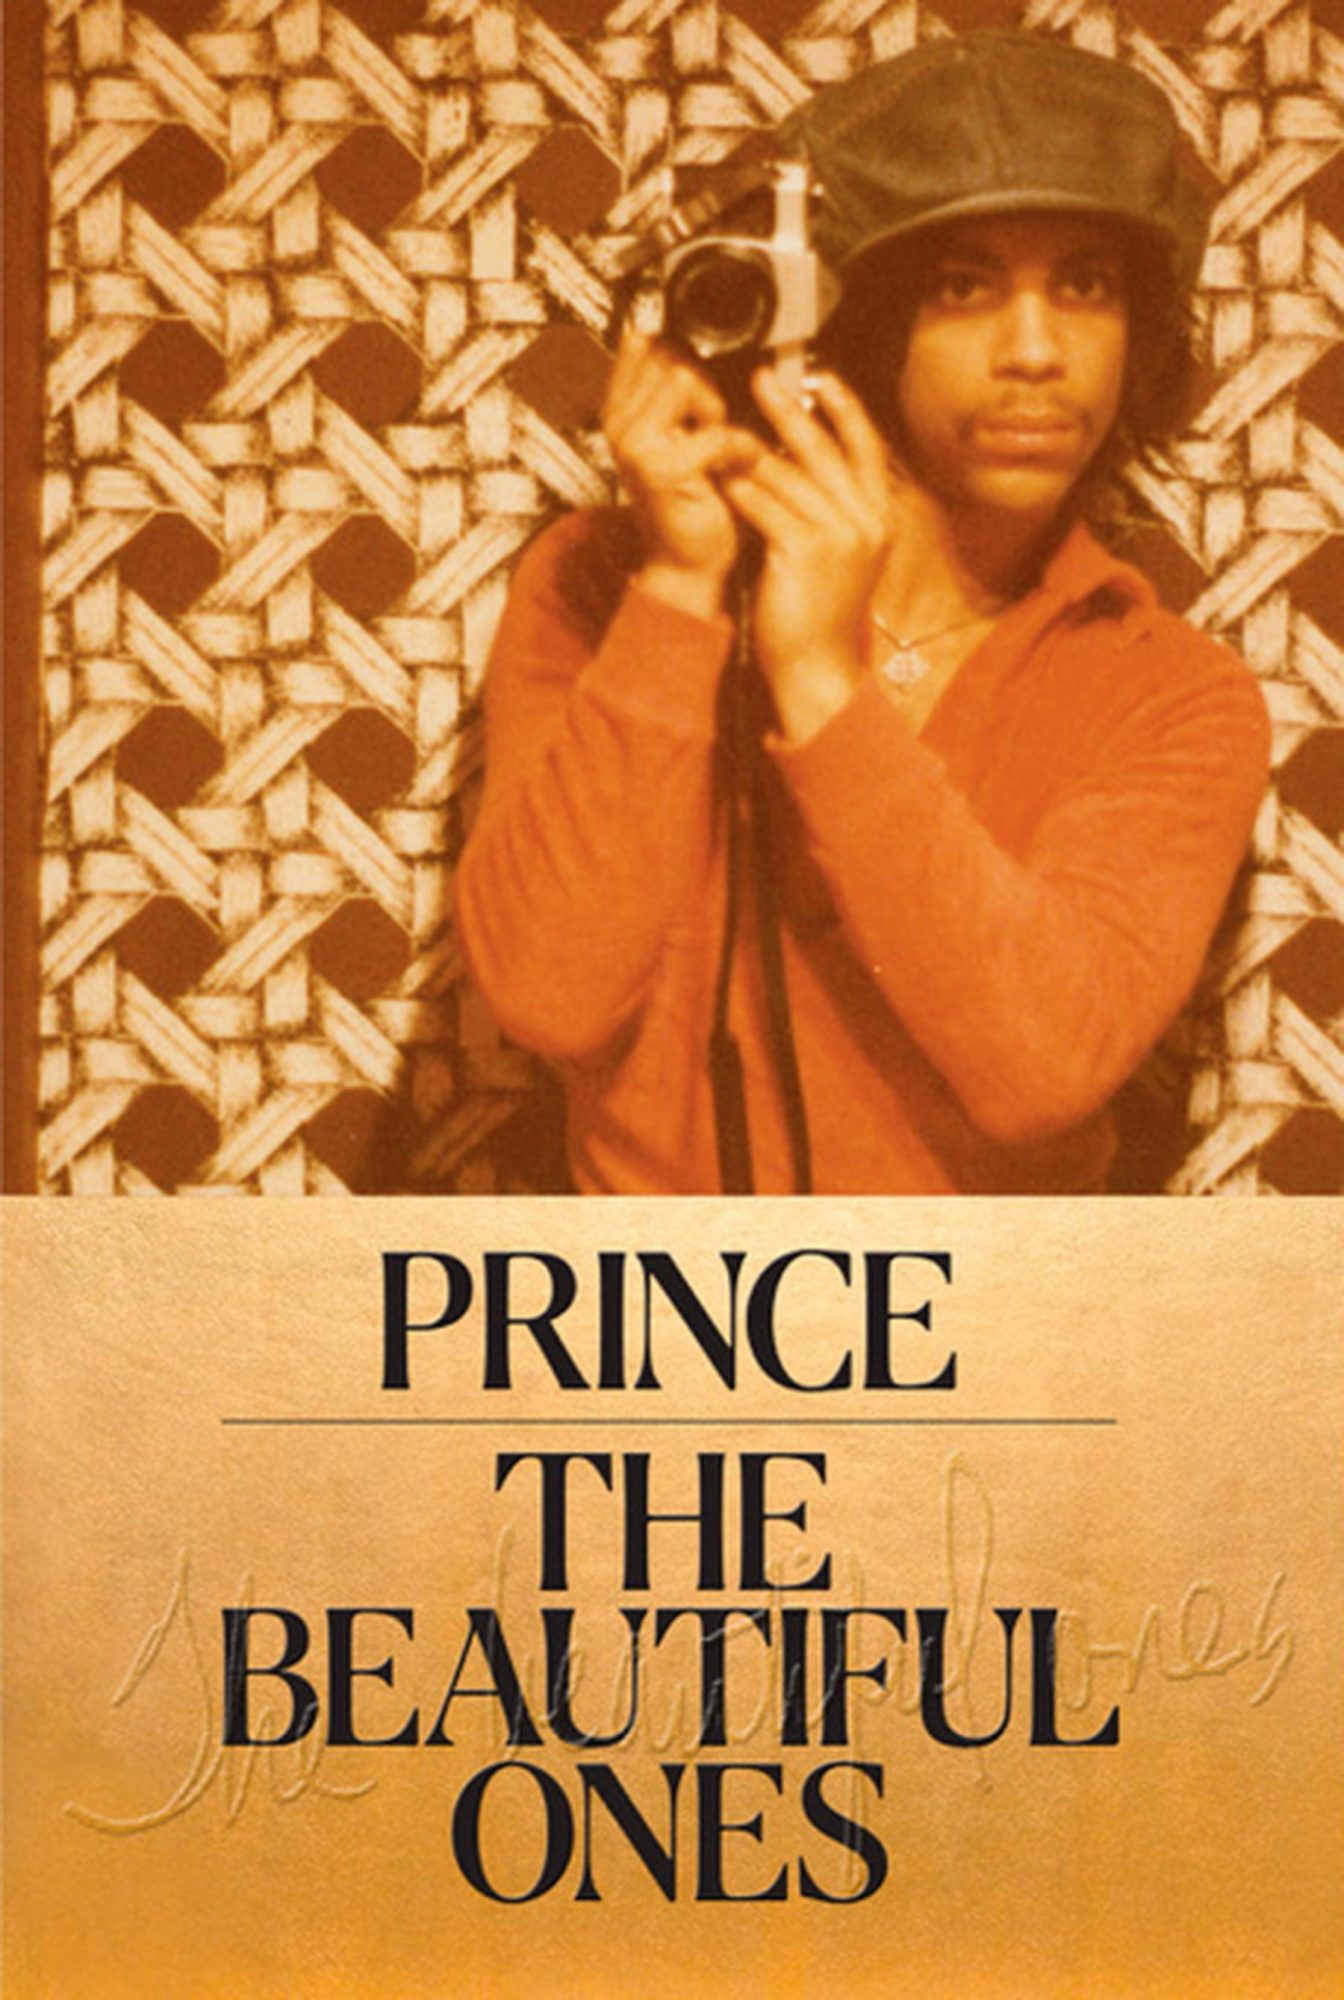 The Beautiful Ones, by Prince